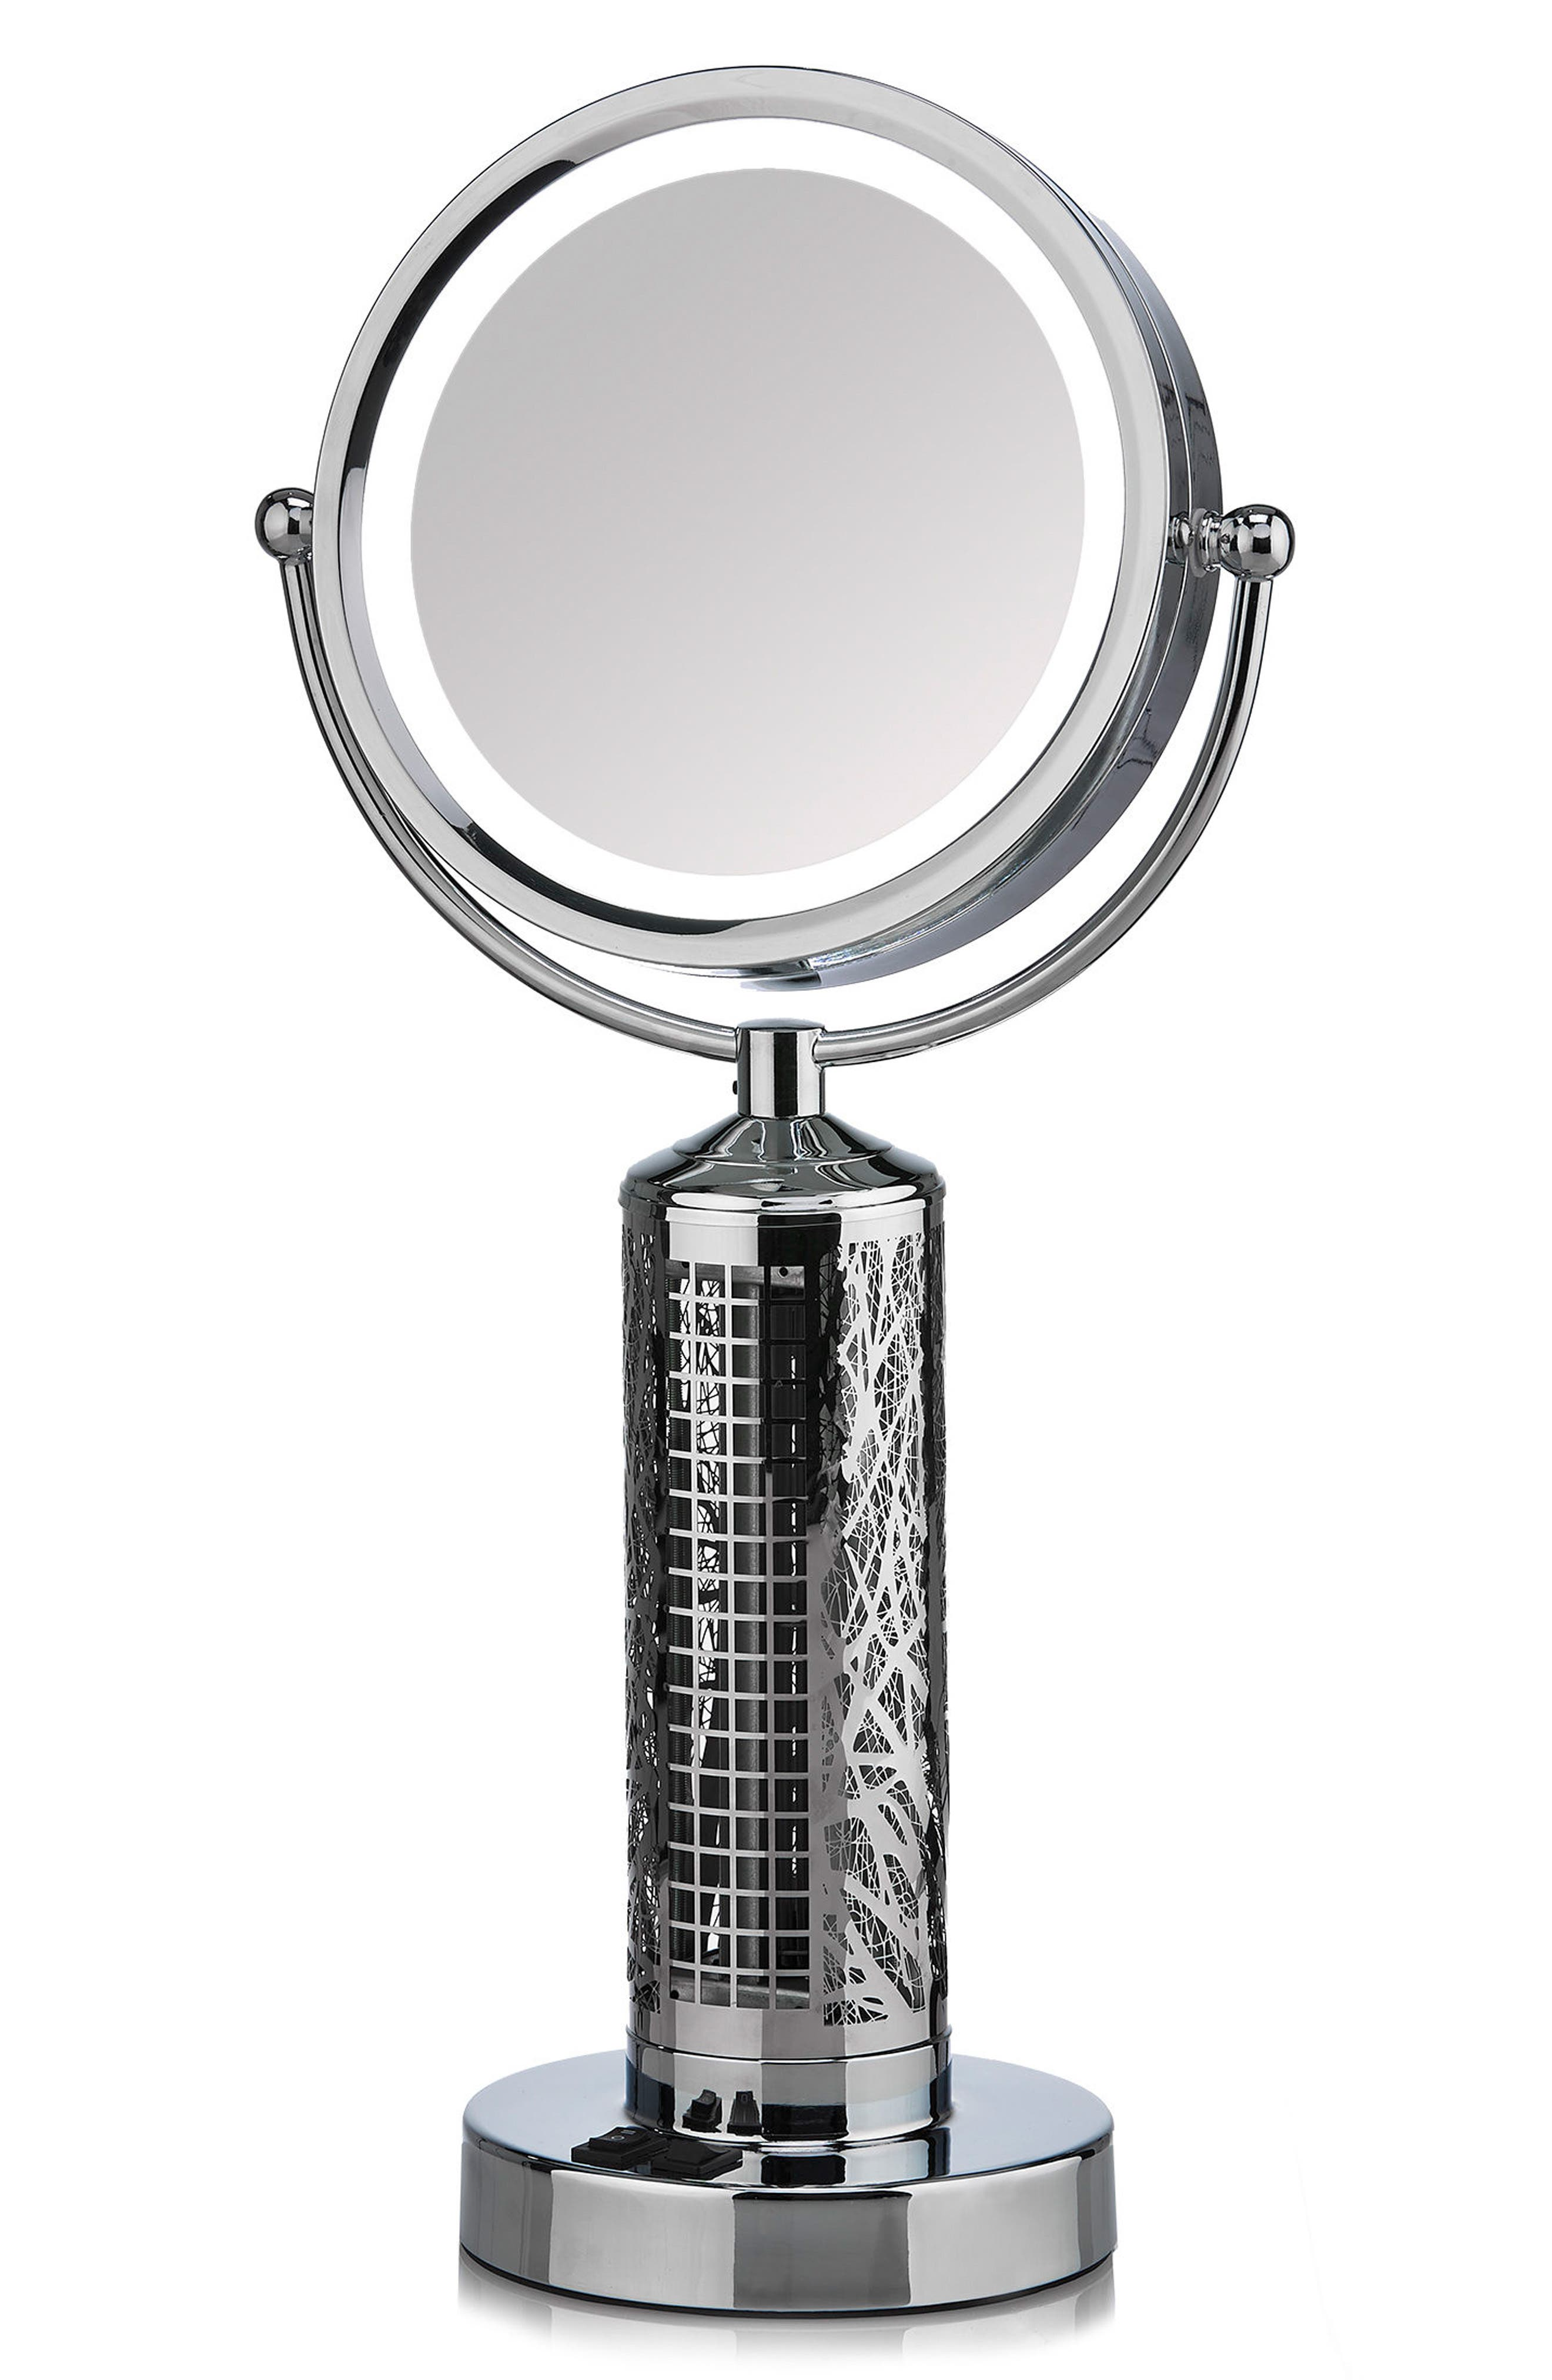 Fanity Makeup Mirror with Electric Fan,                             Main thumbnail 1, color,